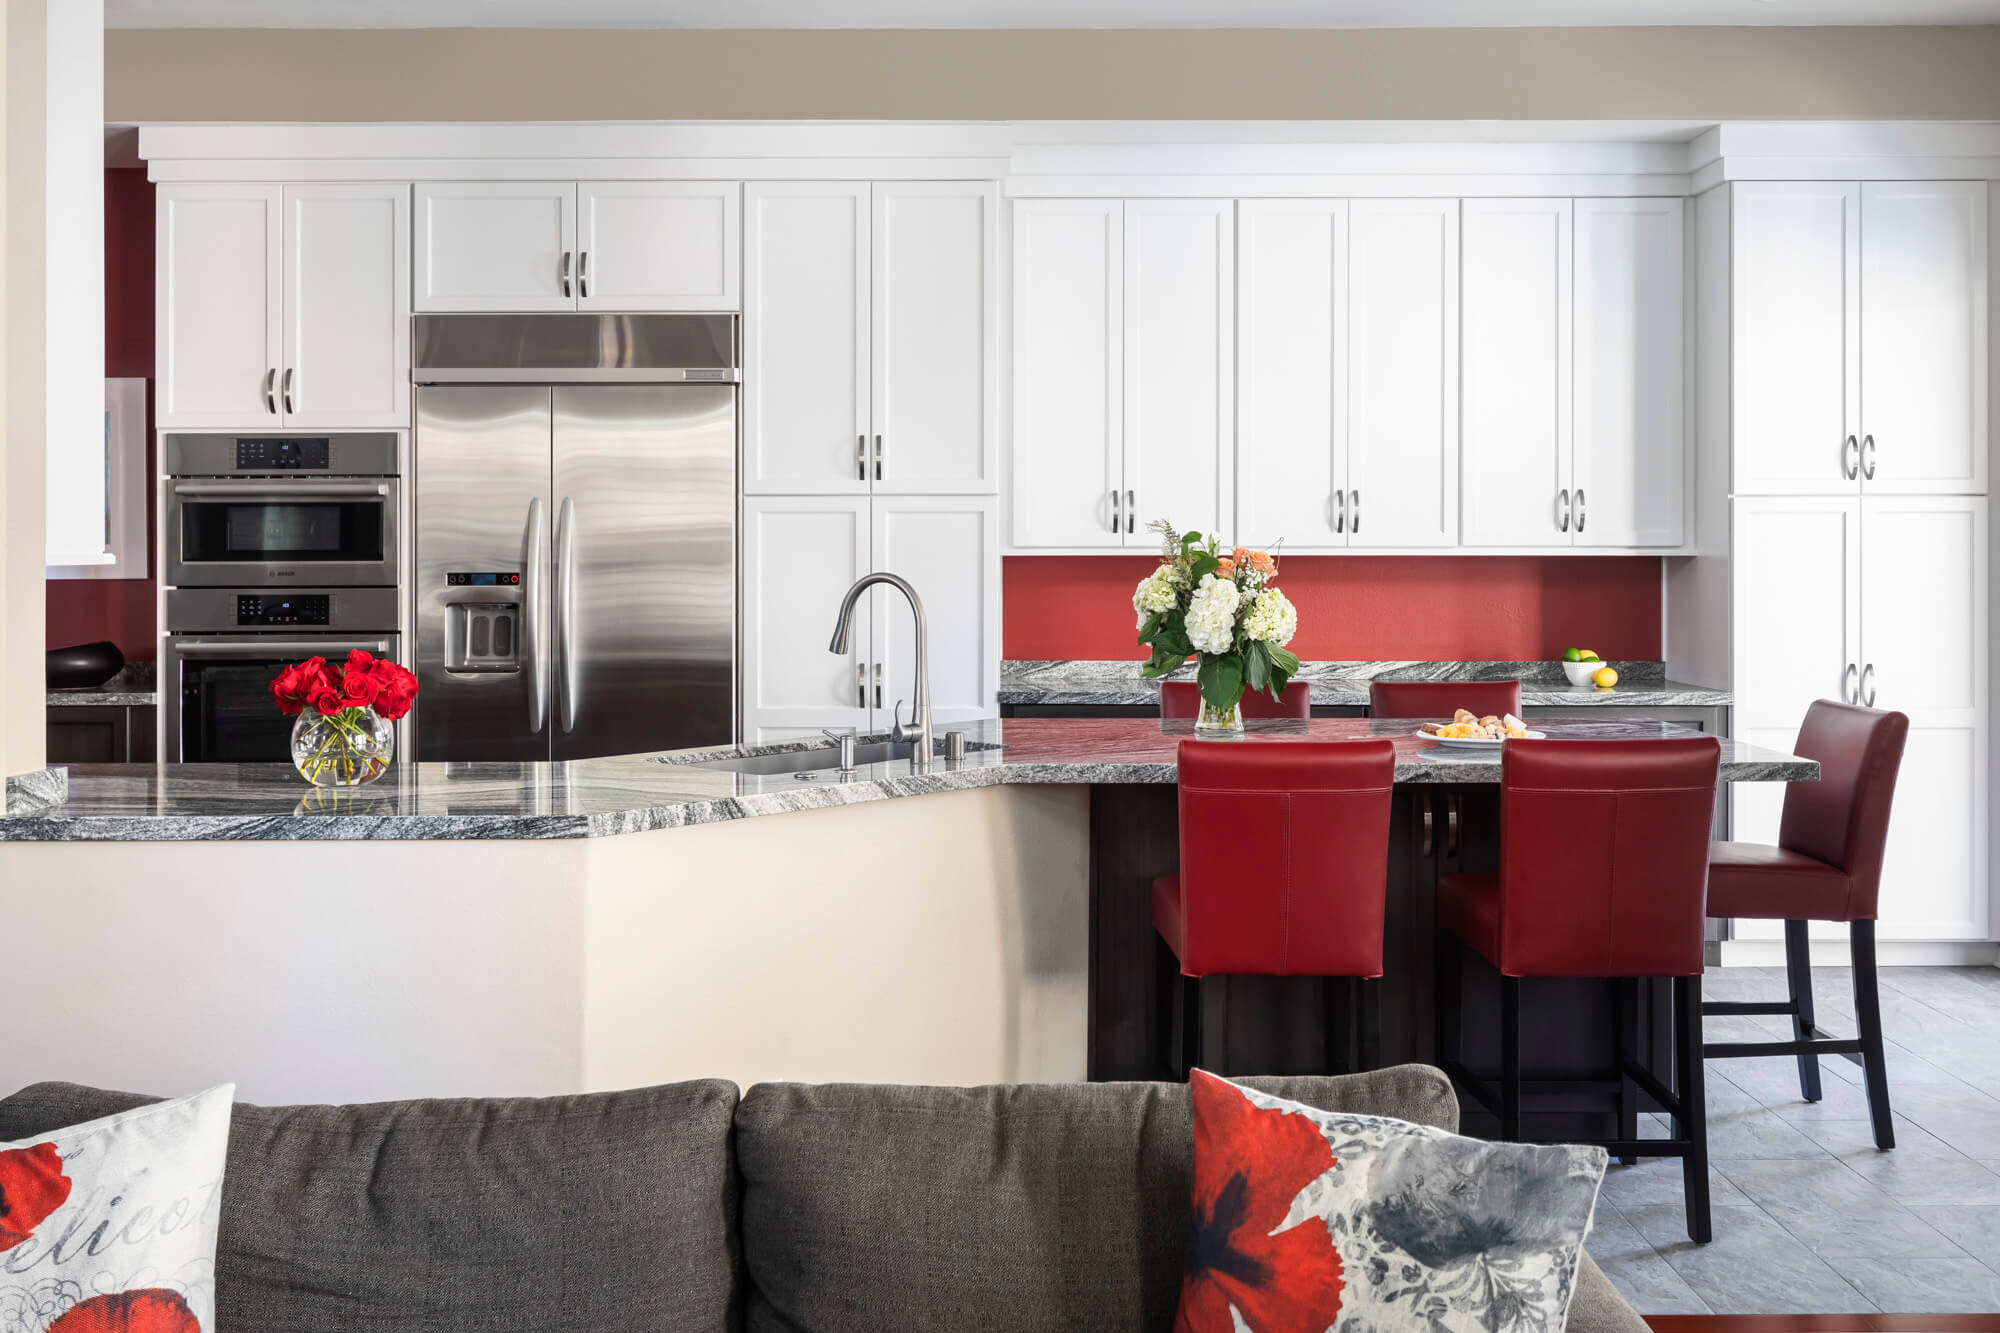 White contemporary styled kitchen with marble countertops